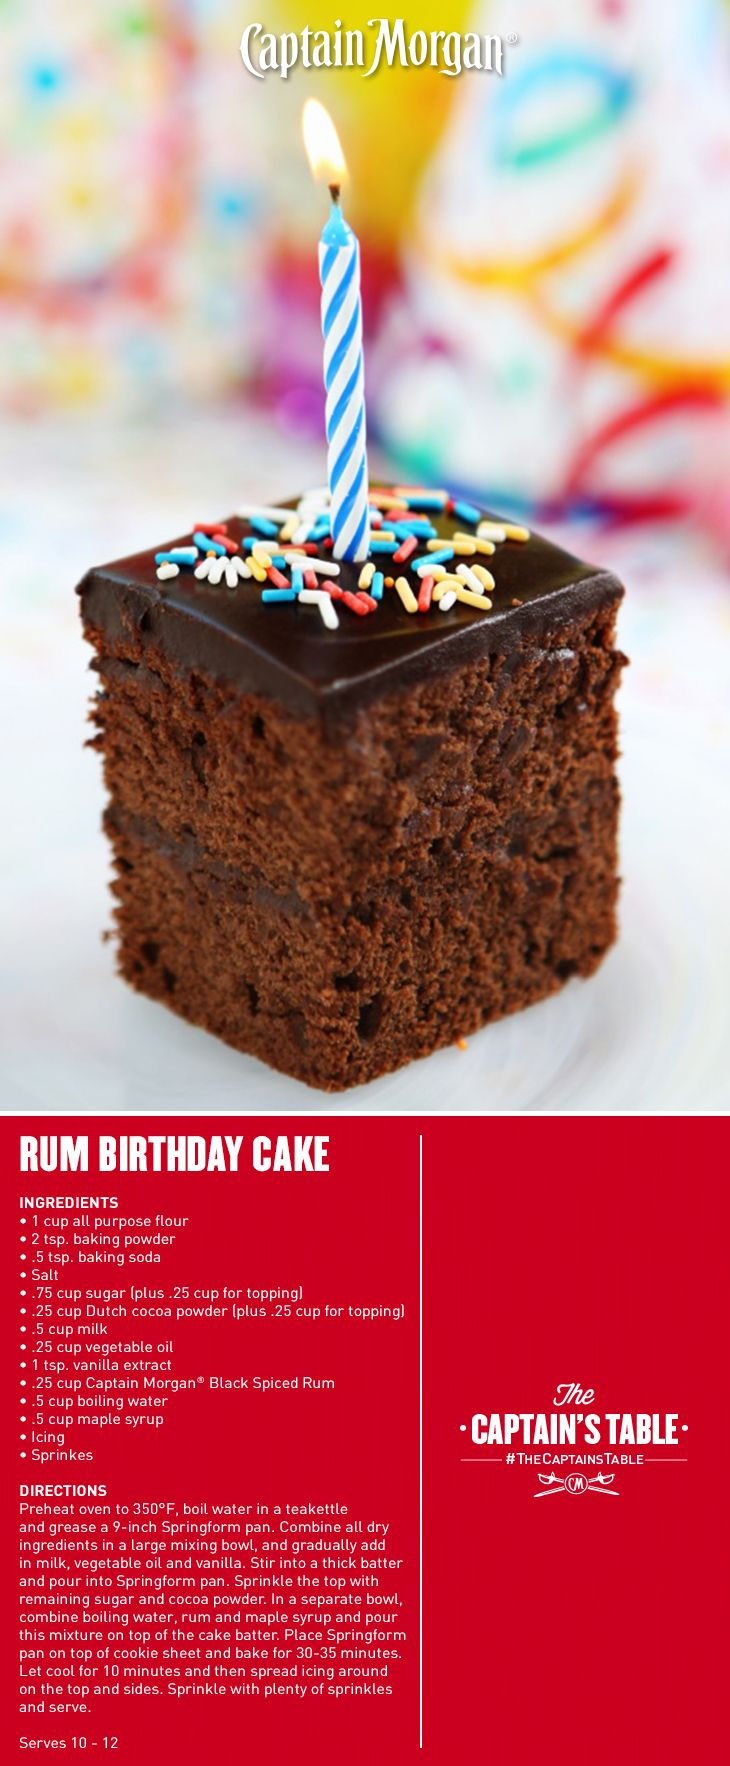 A birthday cake recipe with the best present baked right inside! #Captain #Morgan #rum #CaptainsTable